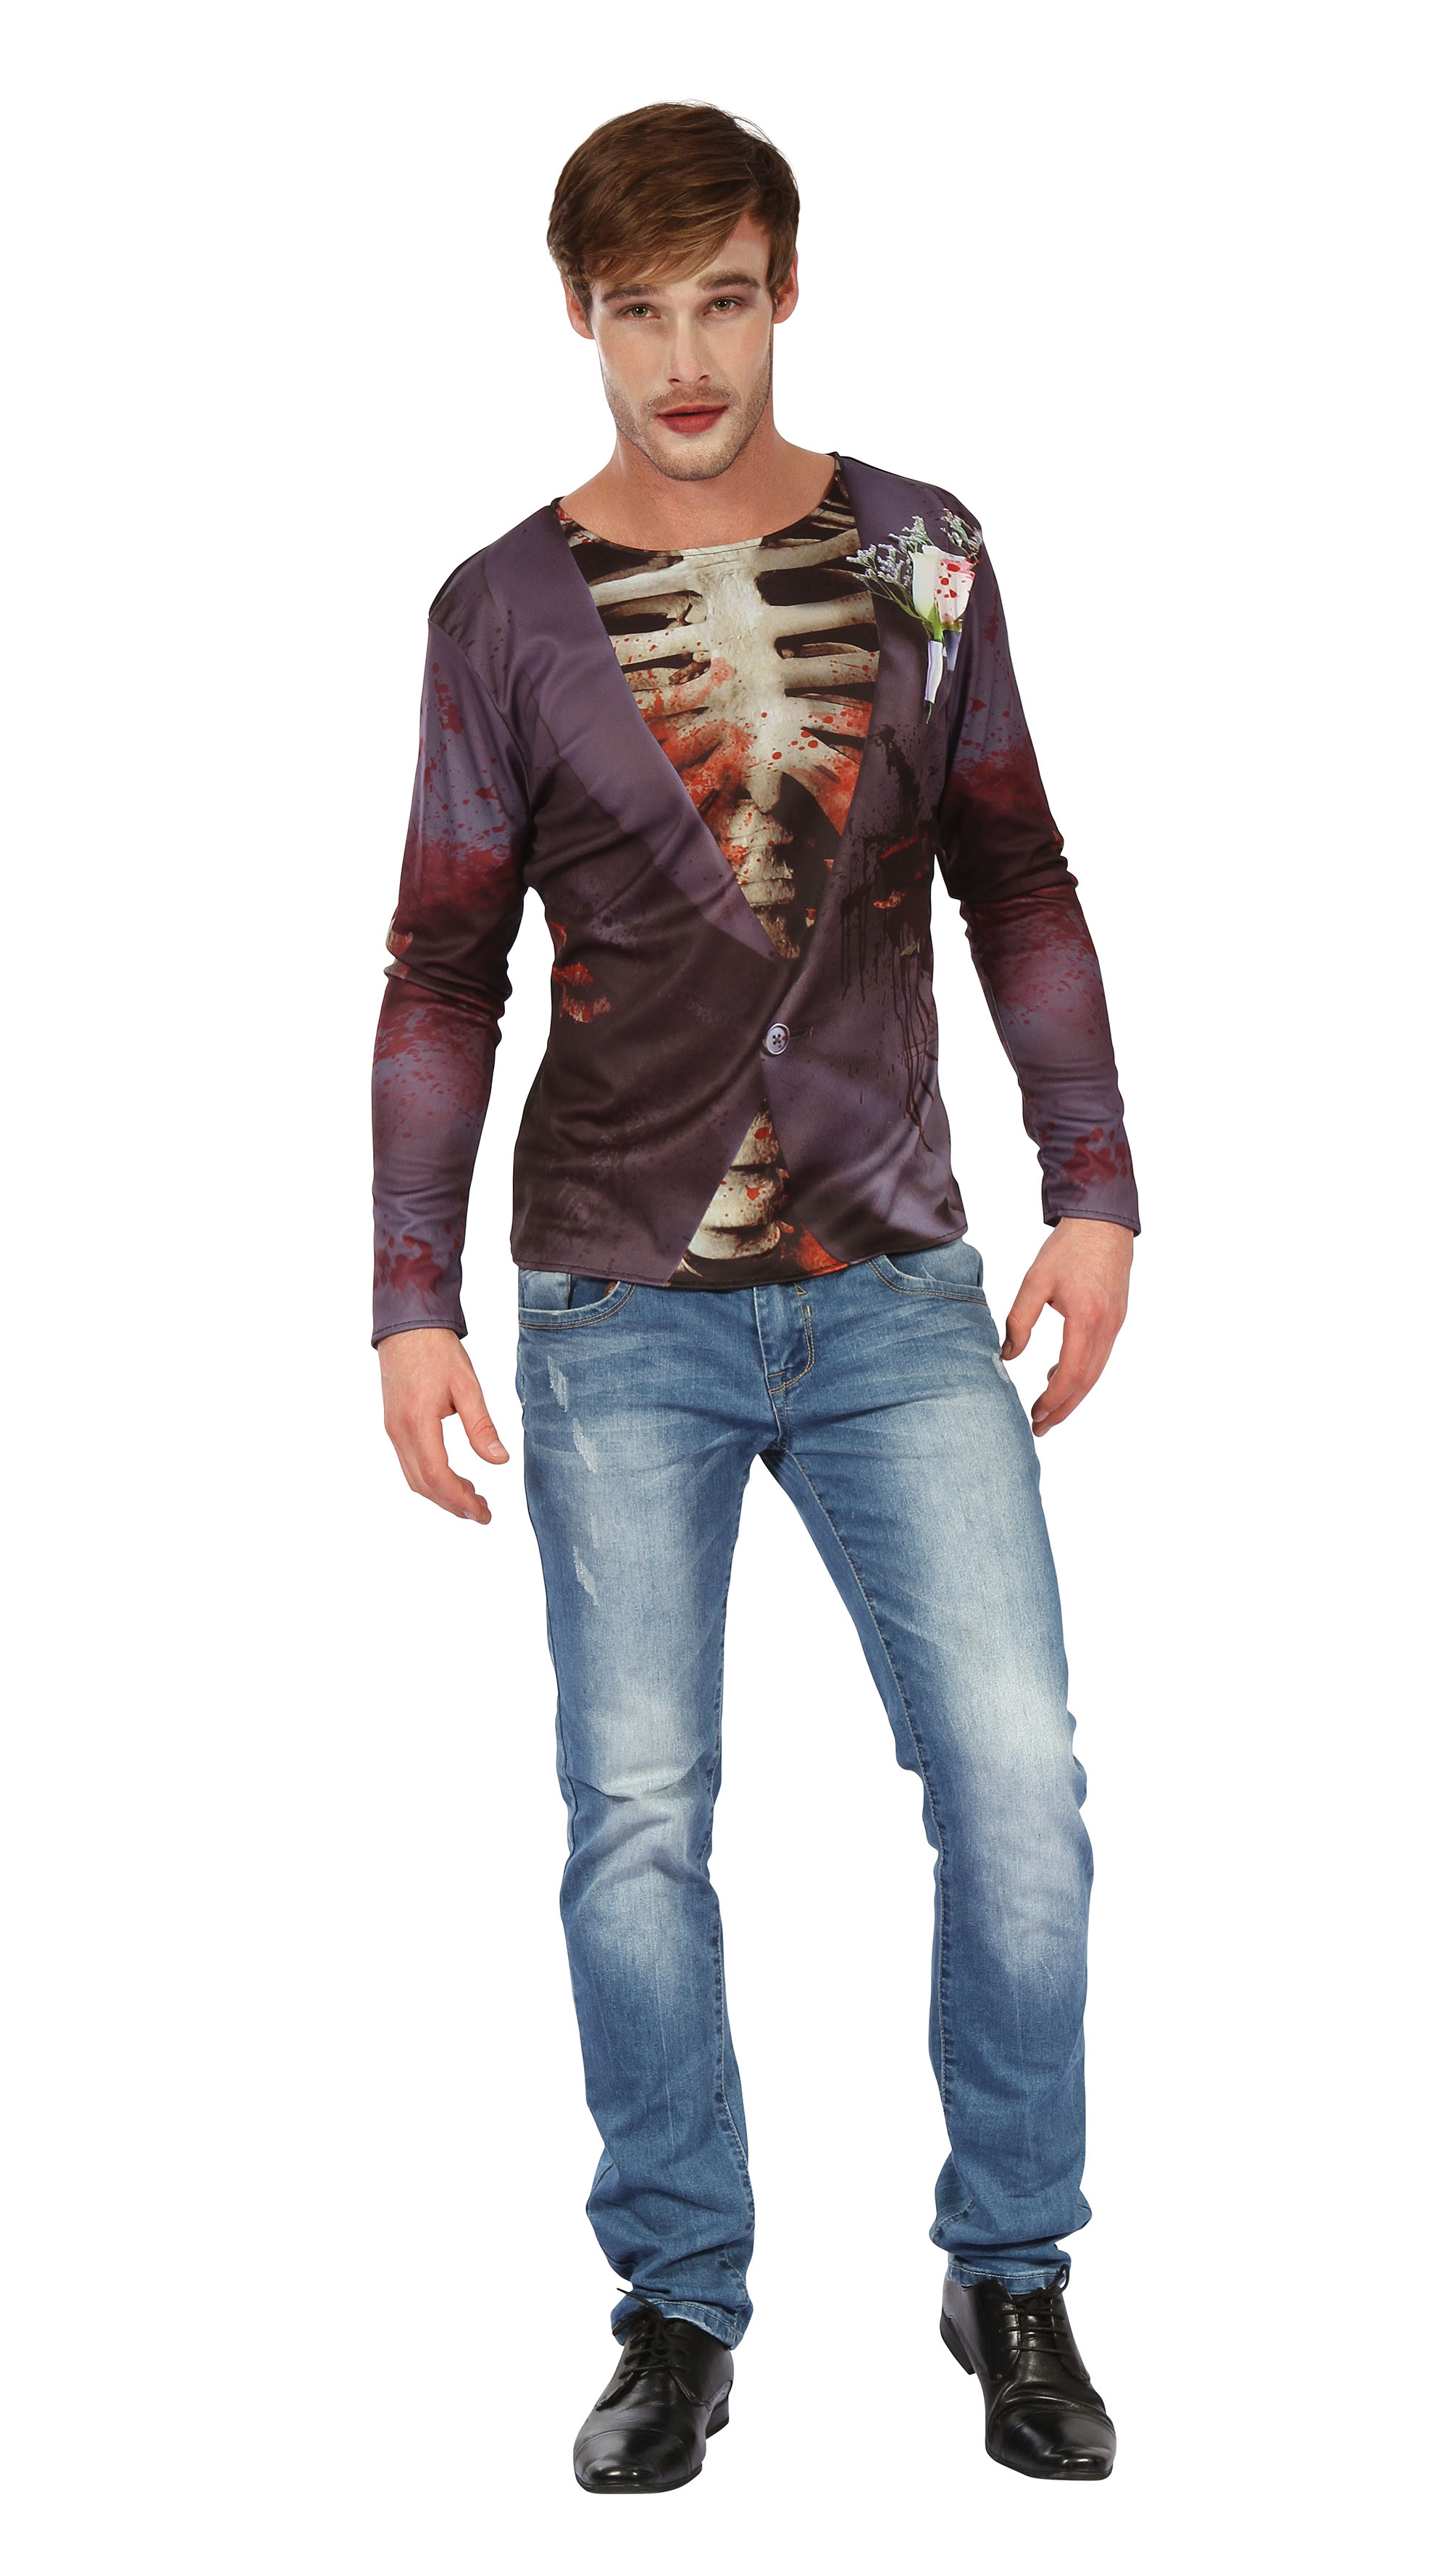 Zombie Bridegroom 3D Print Shirt